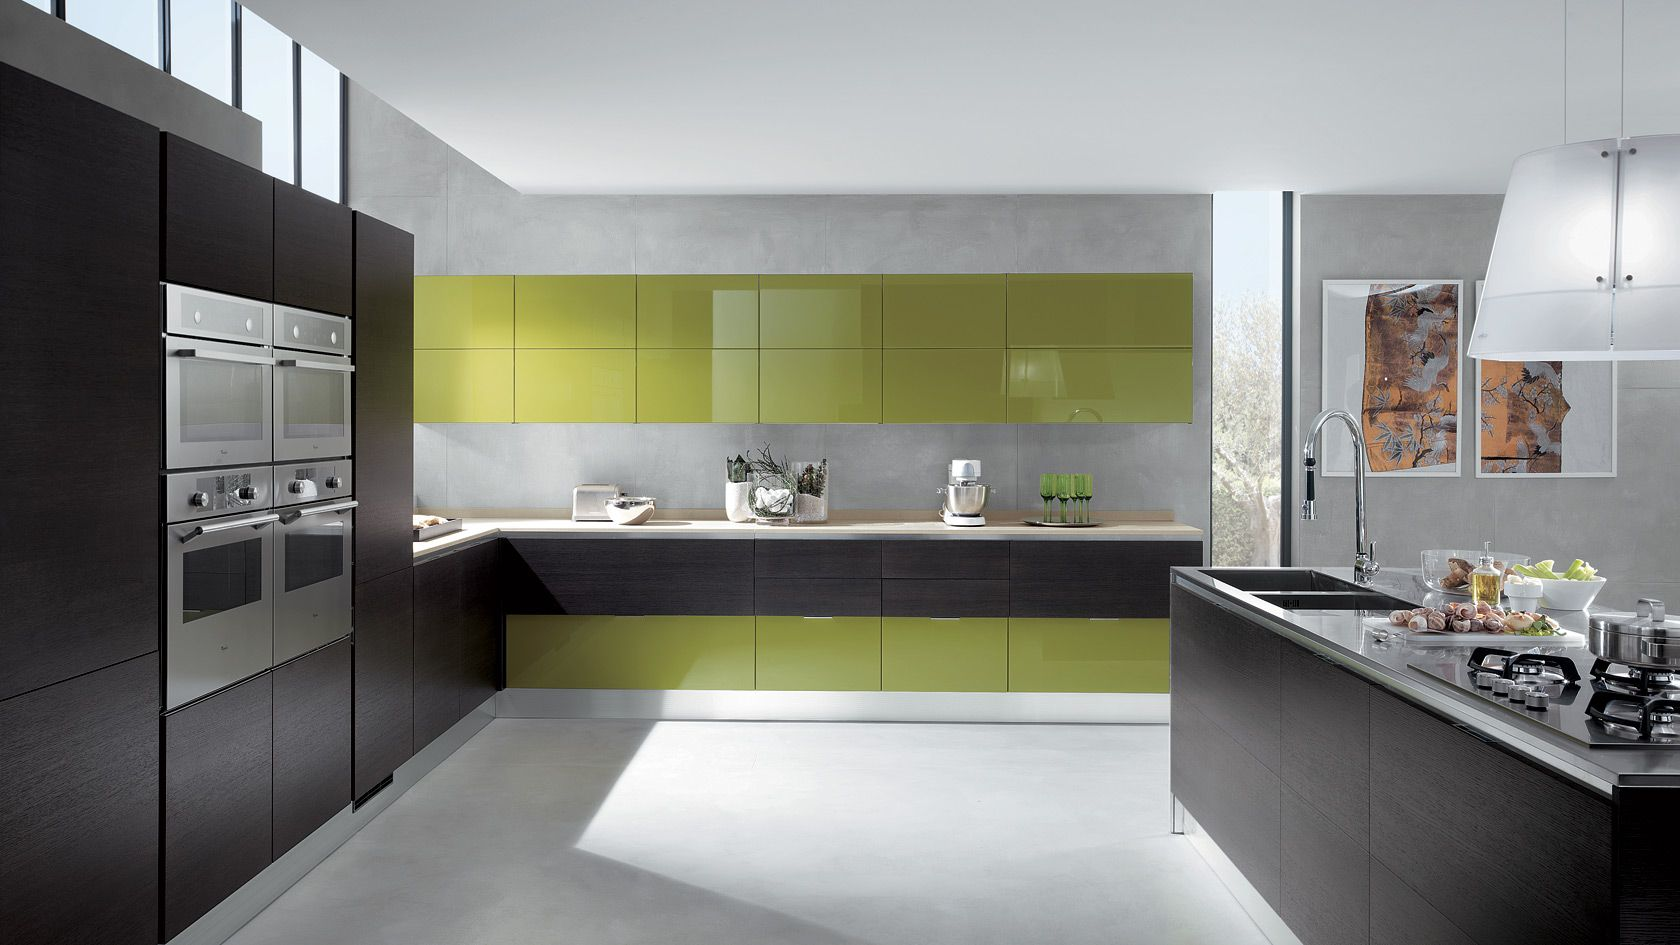 Cucina Mood Scavolini | kitchens | Pinterest | Cucina, Kitchens and ...